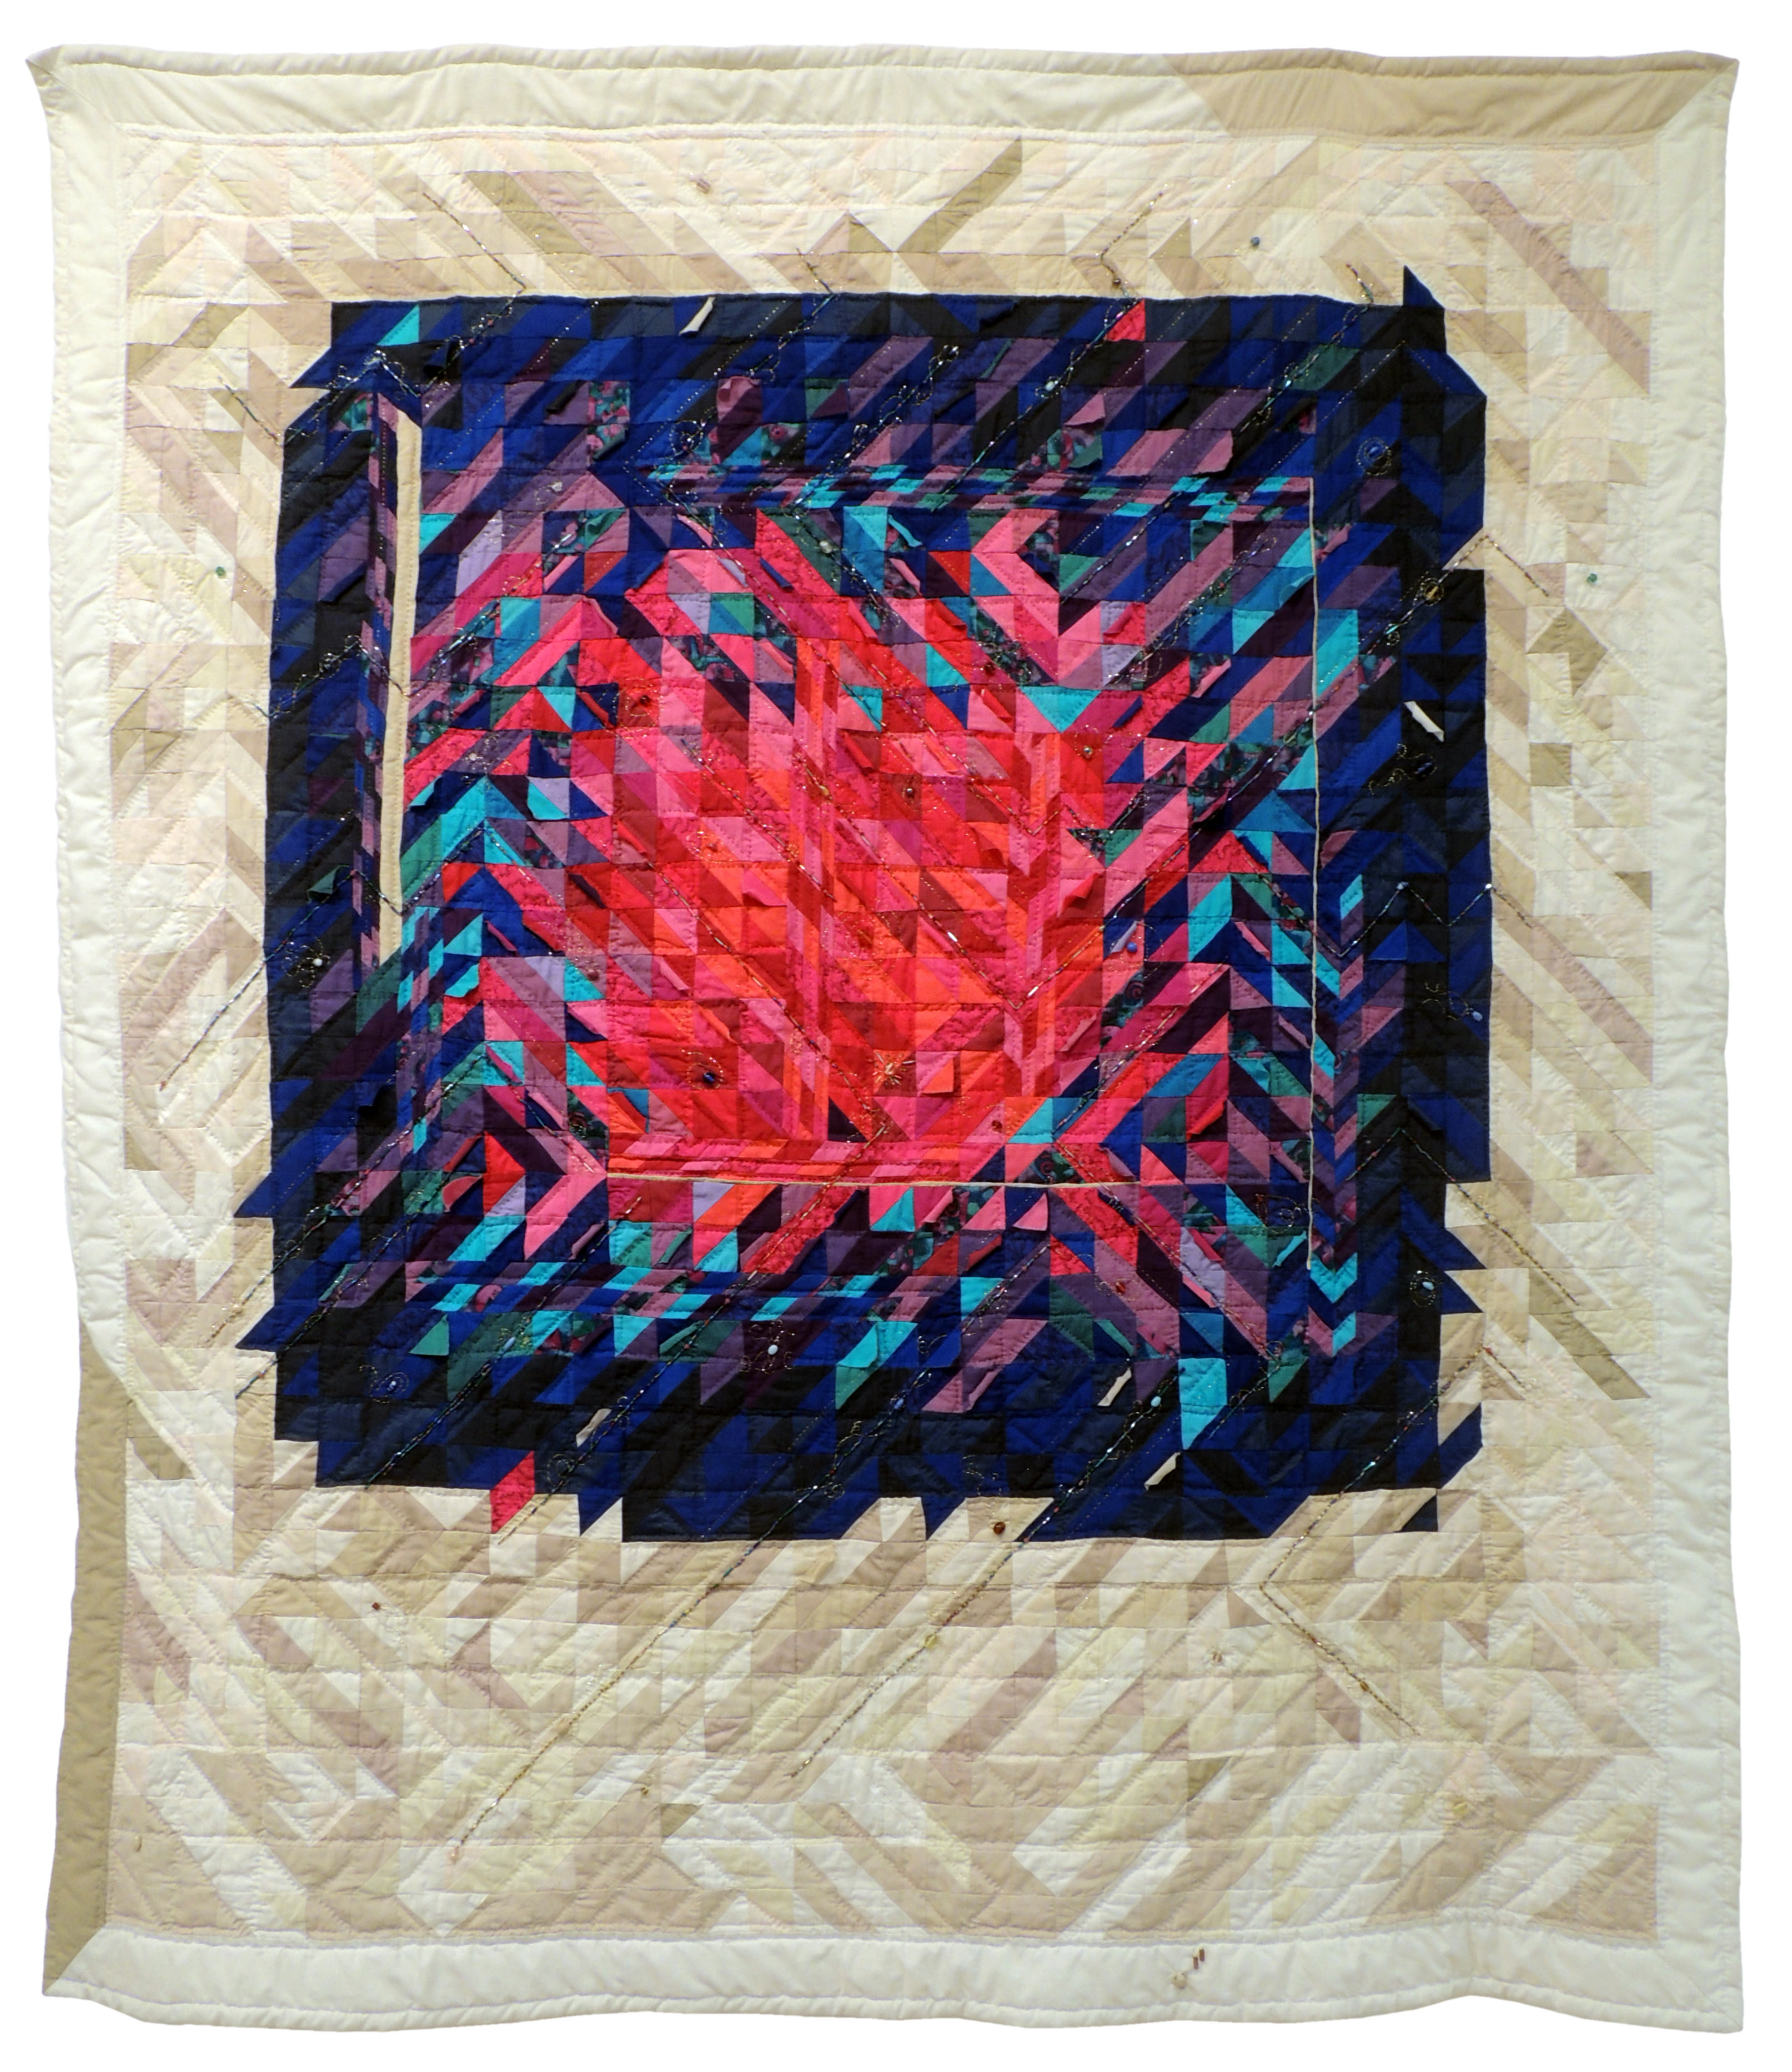 Jessie Z. Barker | WINDOW TO A WILDFIRE | Fabric, Metallic, Thread, Beads